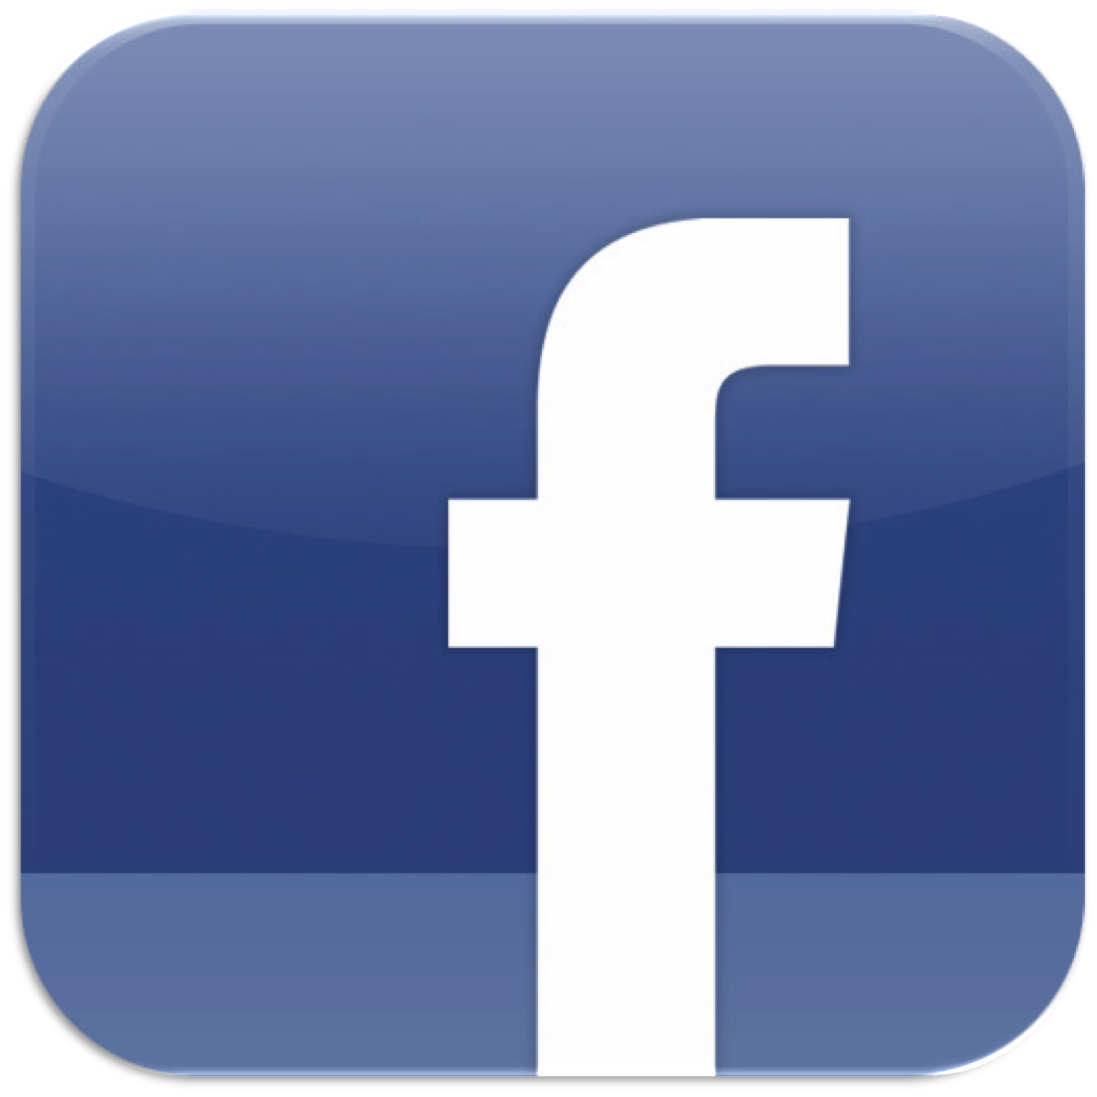 Official Facebook Icon Png image #737